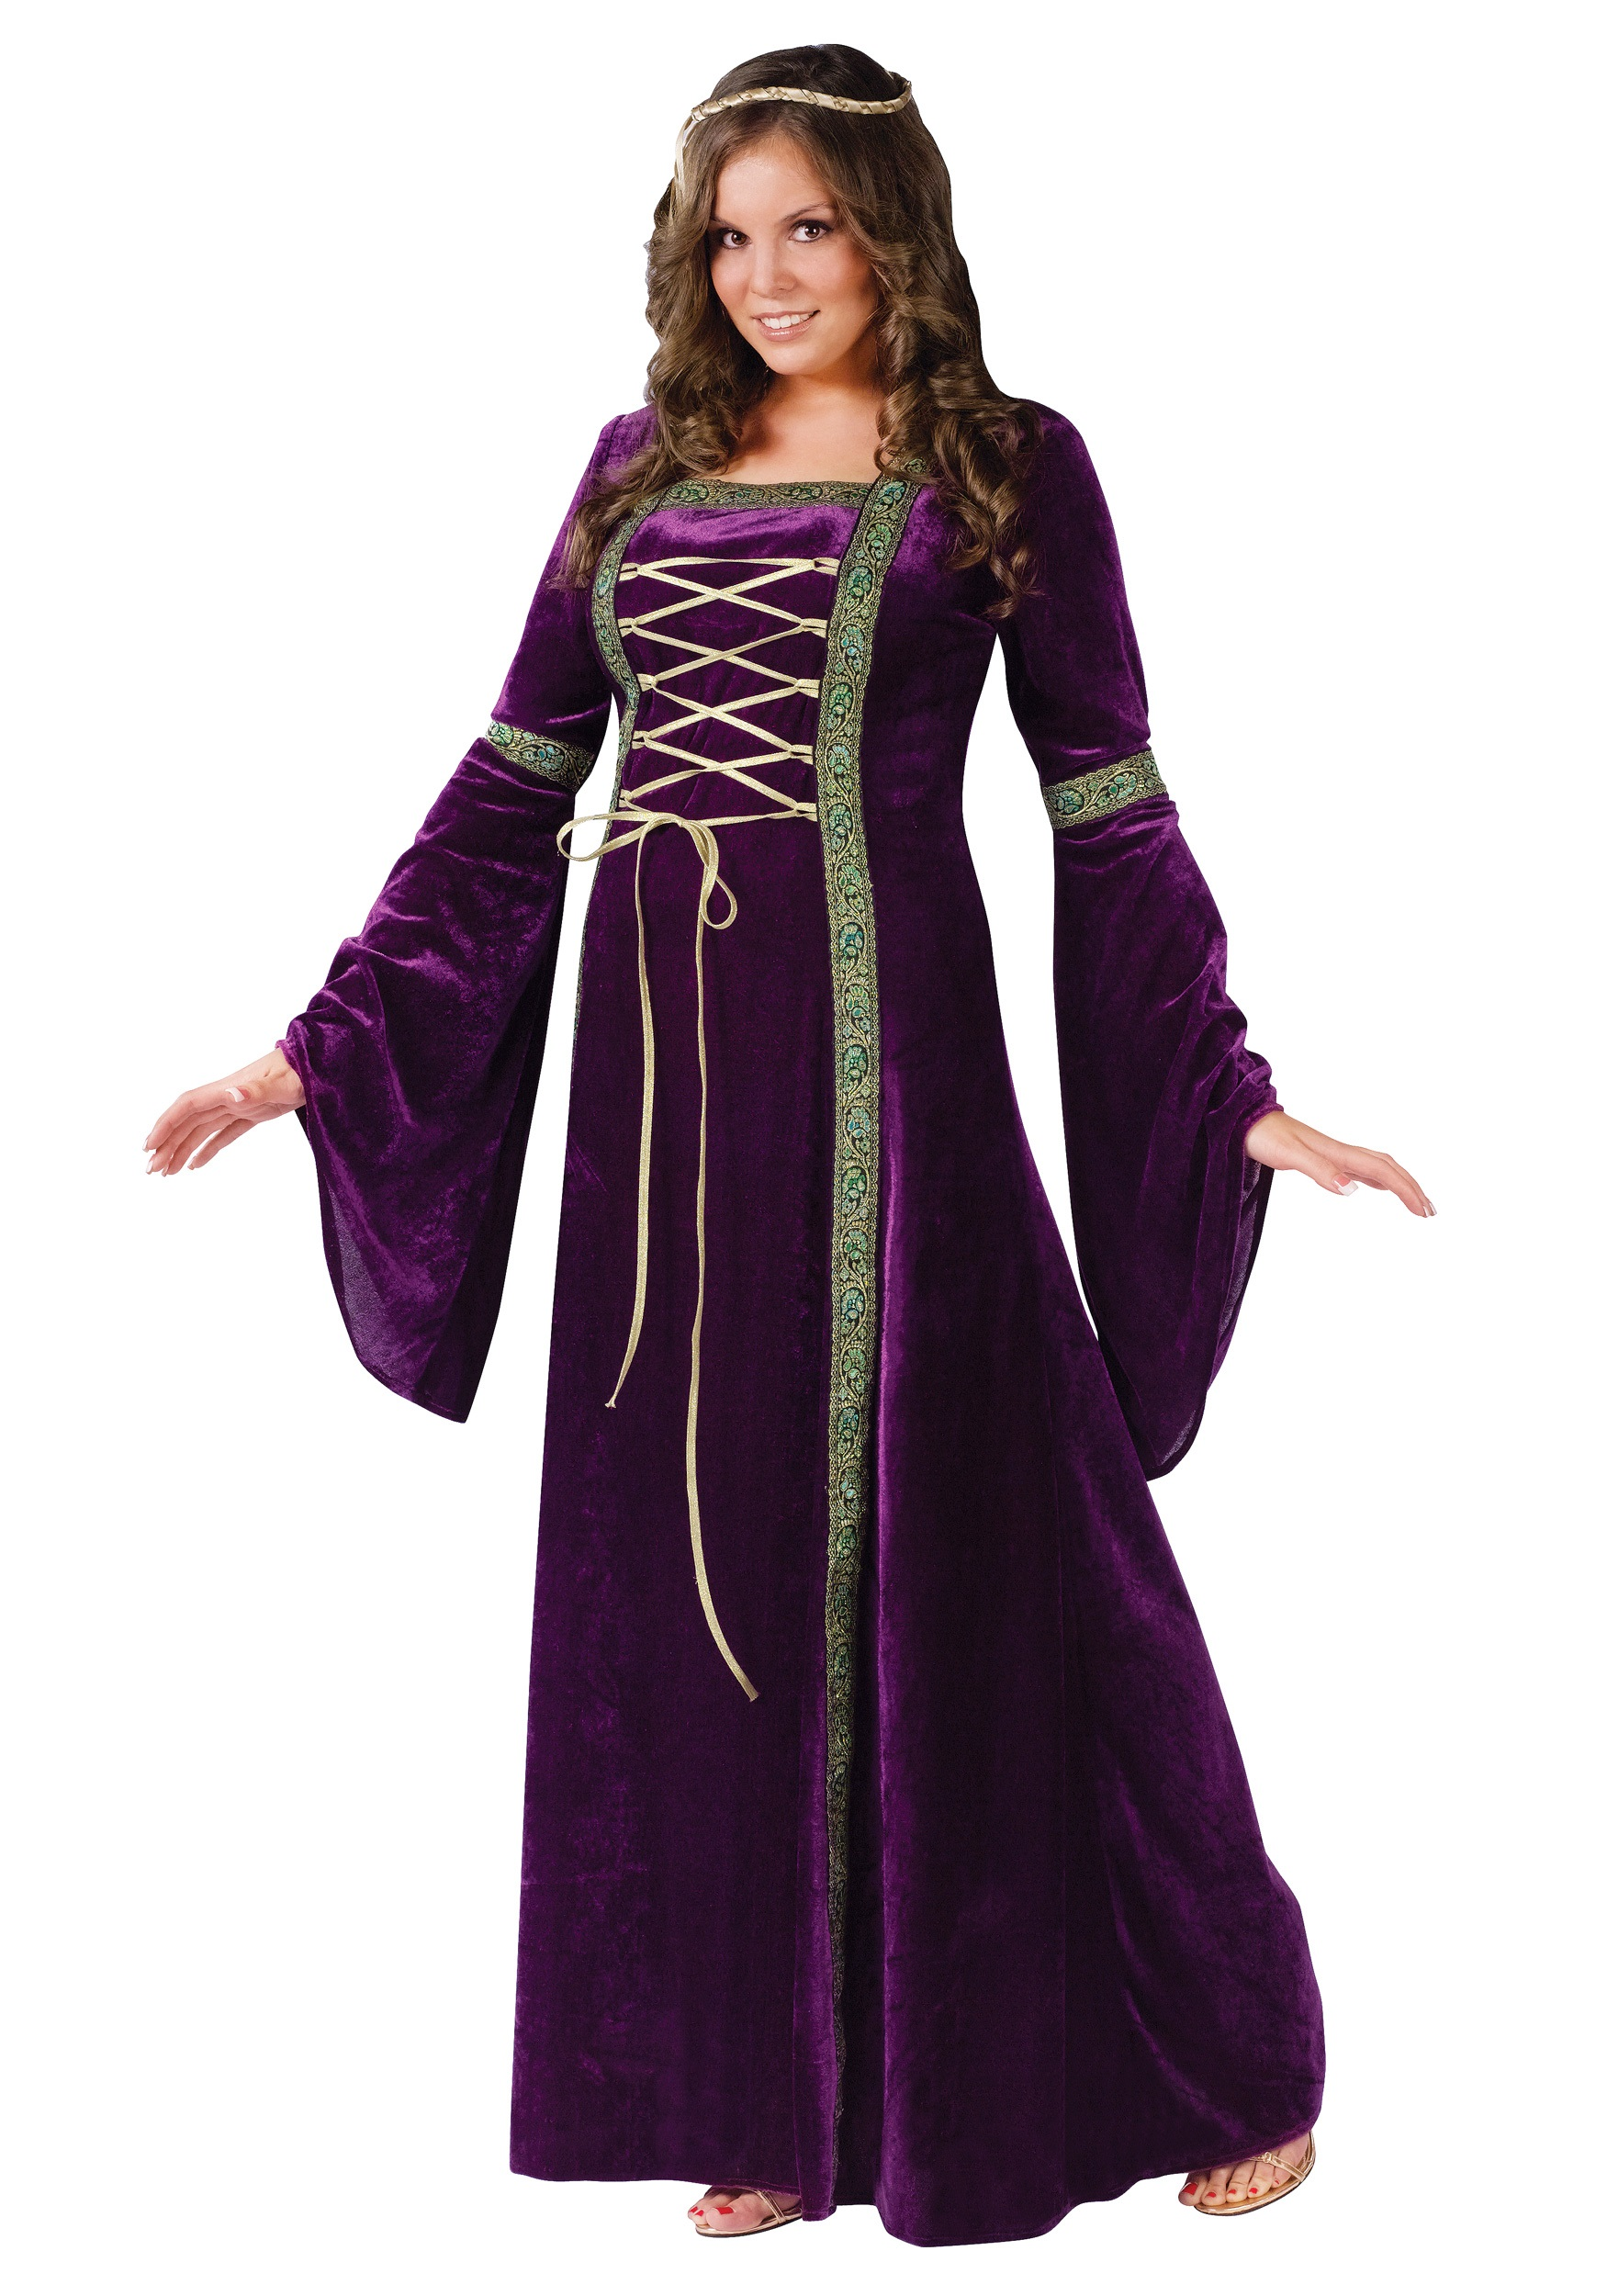 Womens Plus Size Renaissance Lady Costume | Decade Costumes